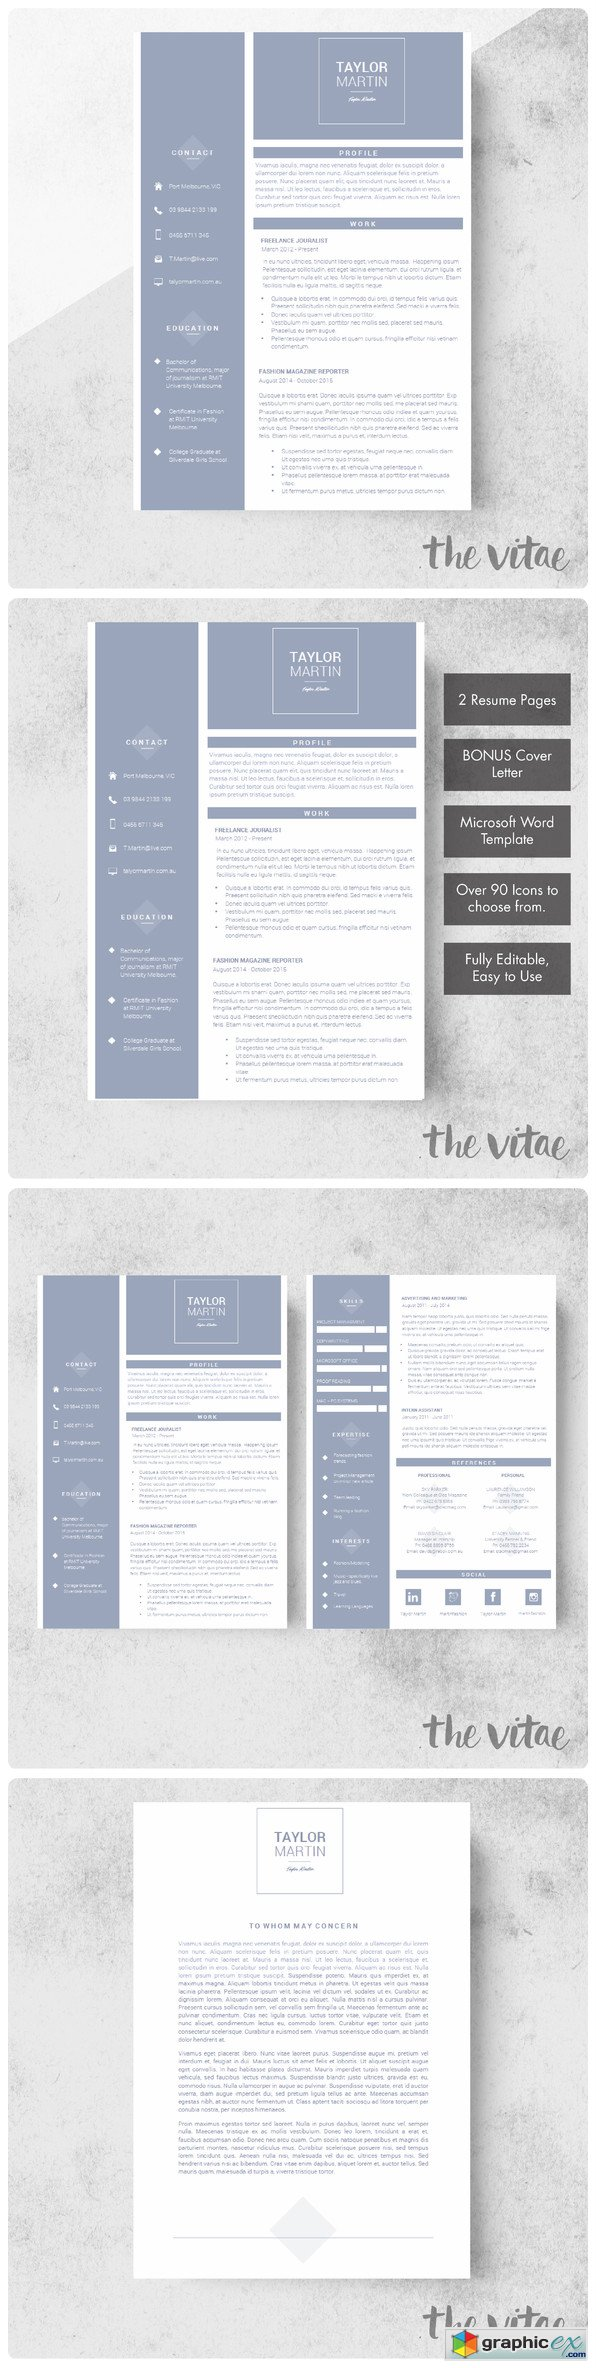 Sailor Resume Template Cover Letter